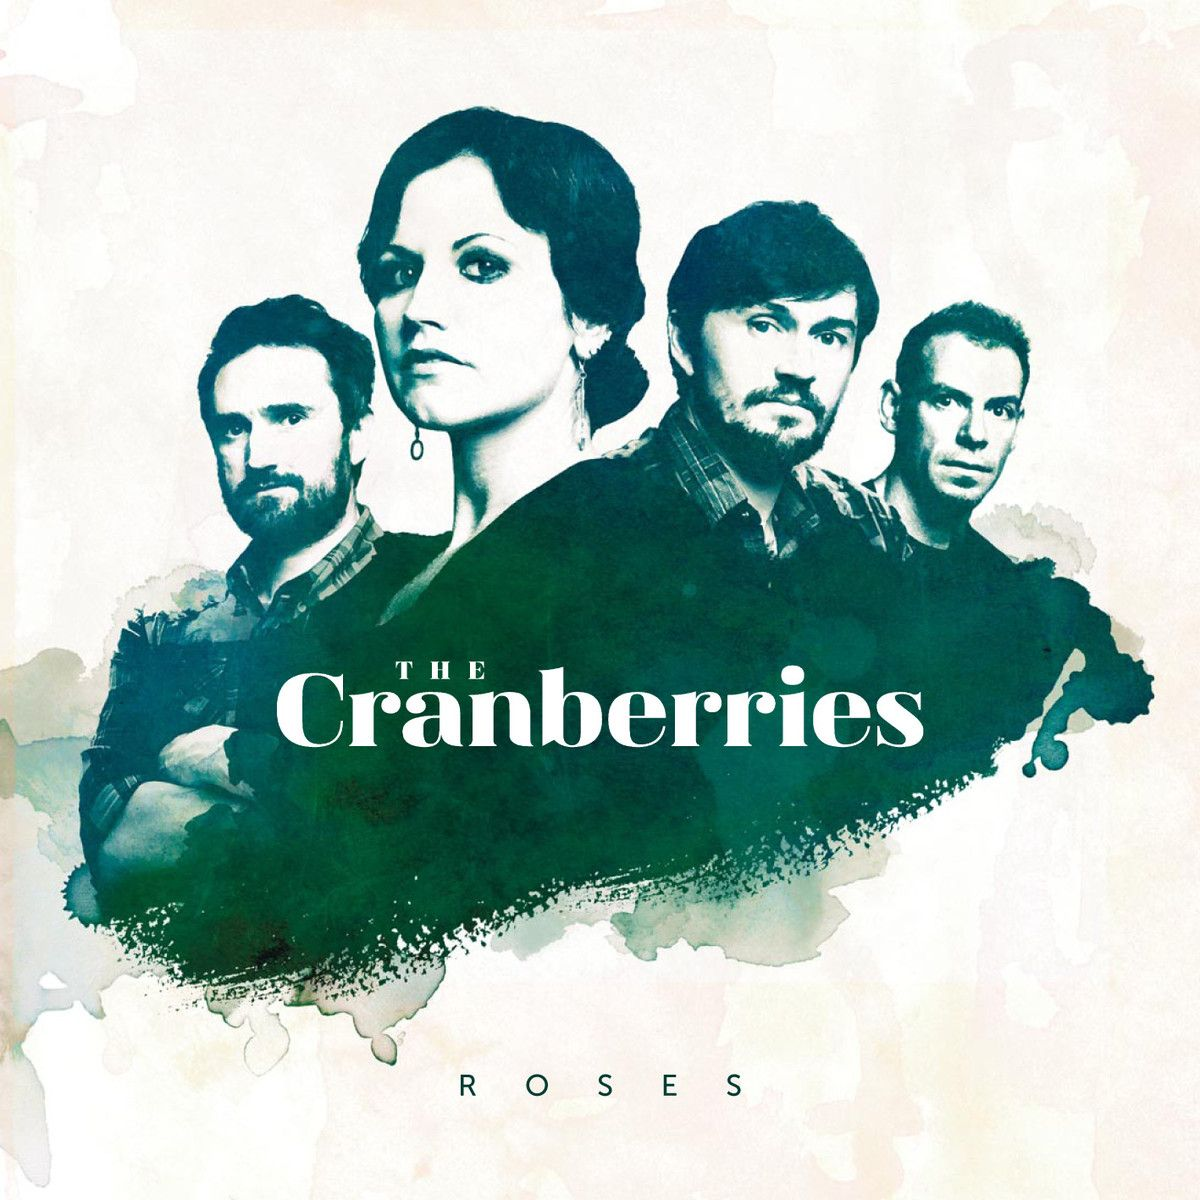 The Cranberries - Roses album cover